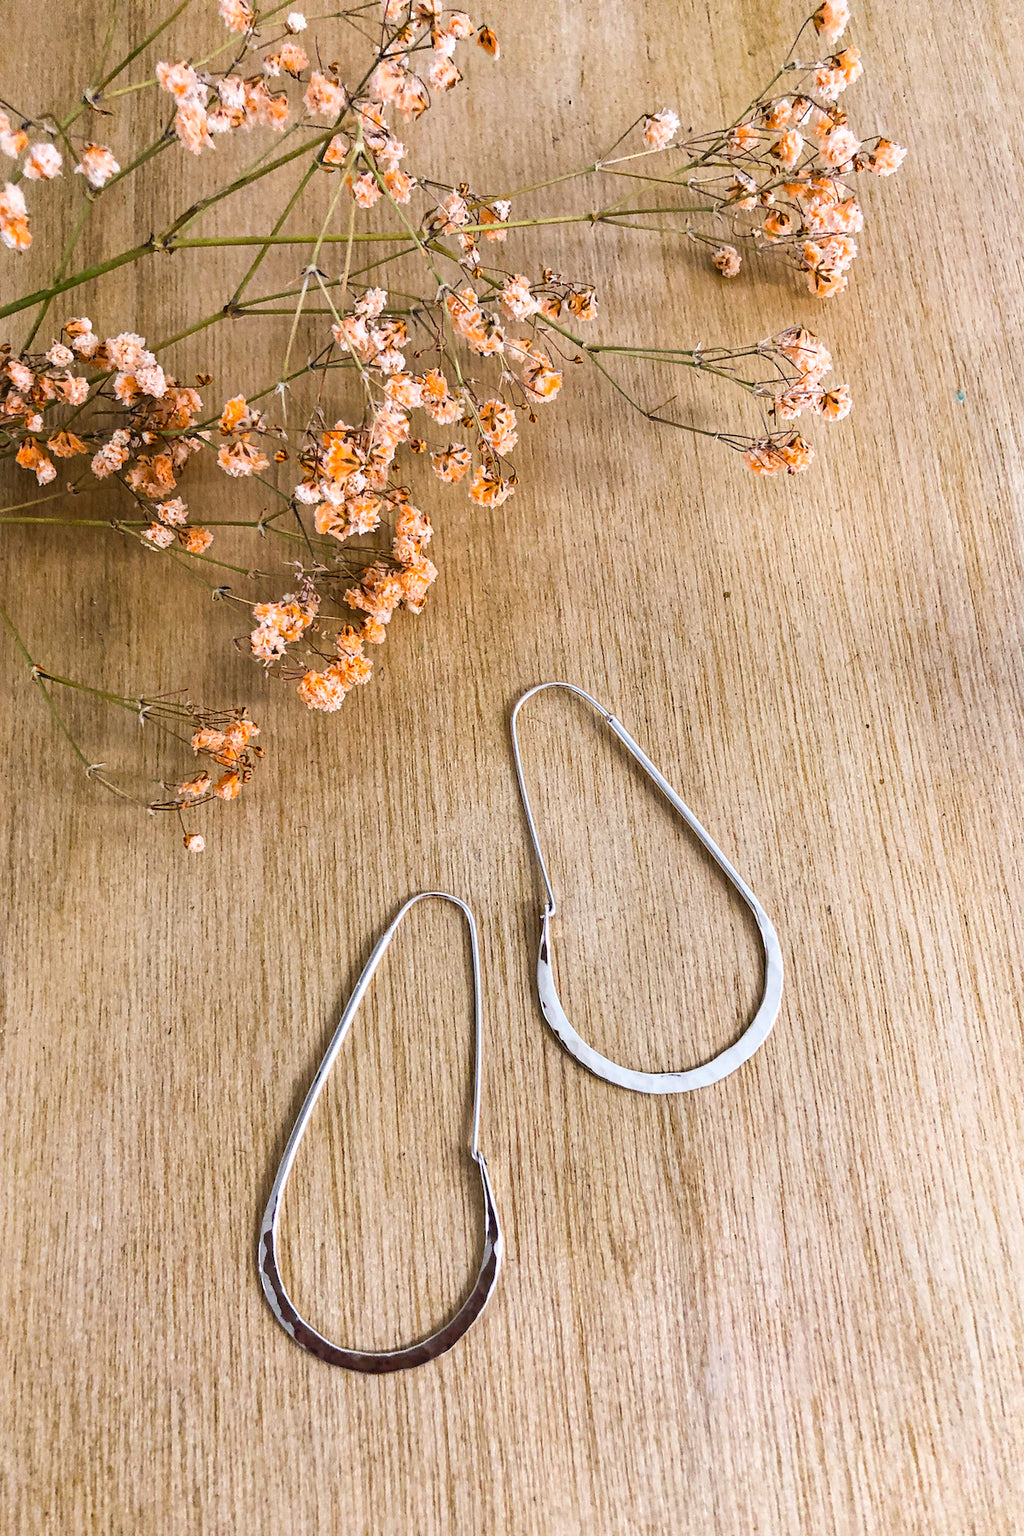 Battered Horseshoe Hoop Earrings Jewellery The Fashion Advocate ethical Australian fashion designer boutique Melbourne sustainable clothes